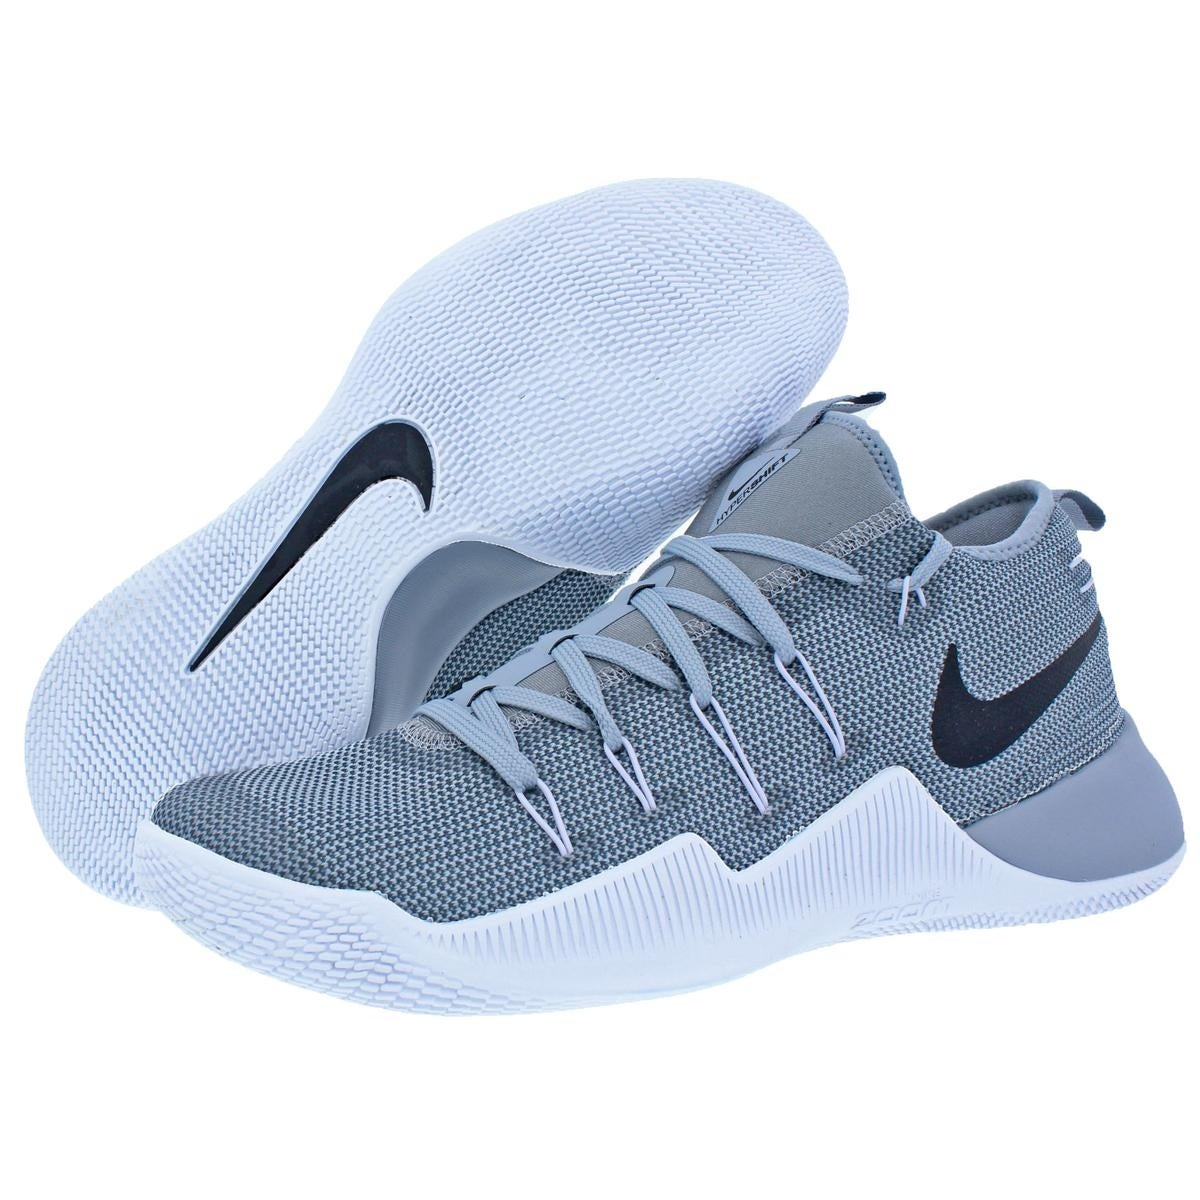 d7f0255c2a2 Shop Nike Mens Hypershift TB PROMO Basketball Shoes Mid Top Nike Zoom - Free  Shipping On Orders Over $45 - Overstock - 21942603